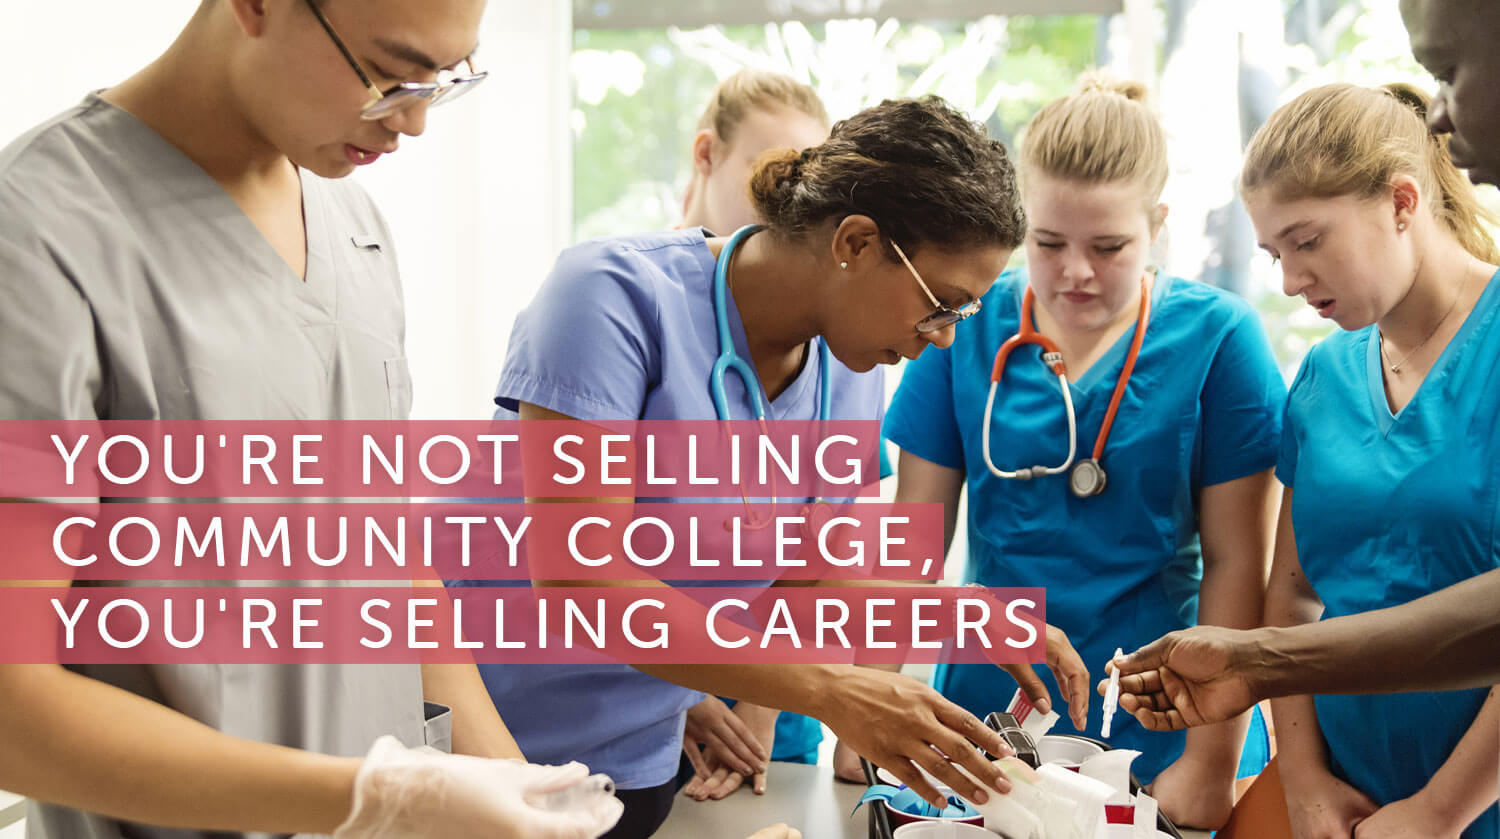 You're Not Selling Community College, You're Selling Careers